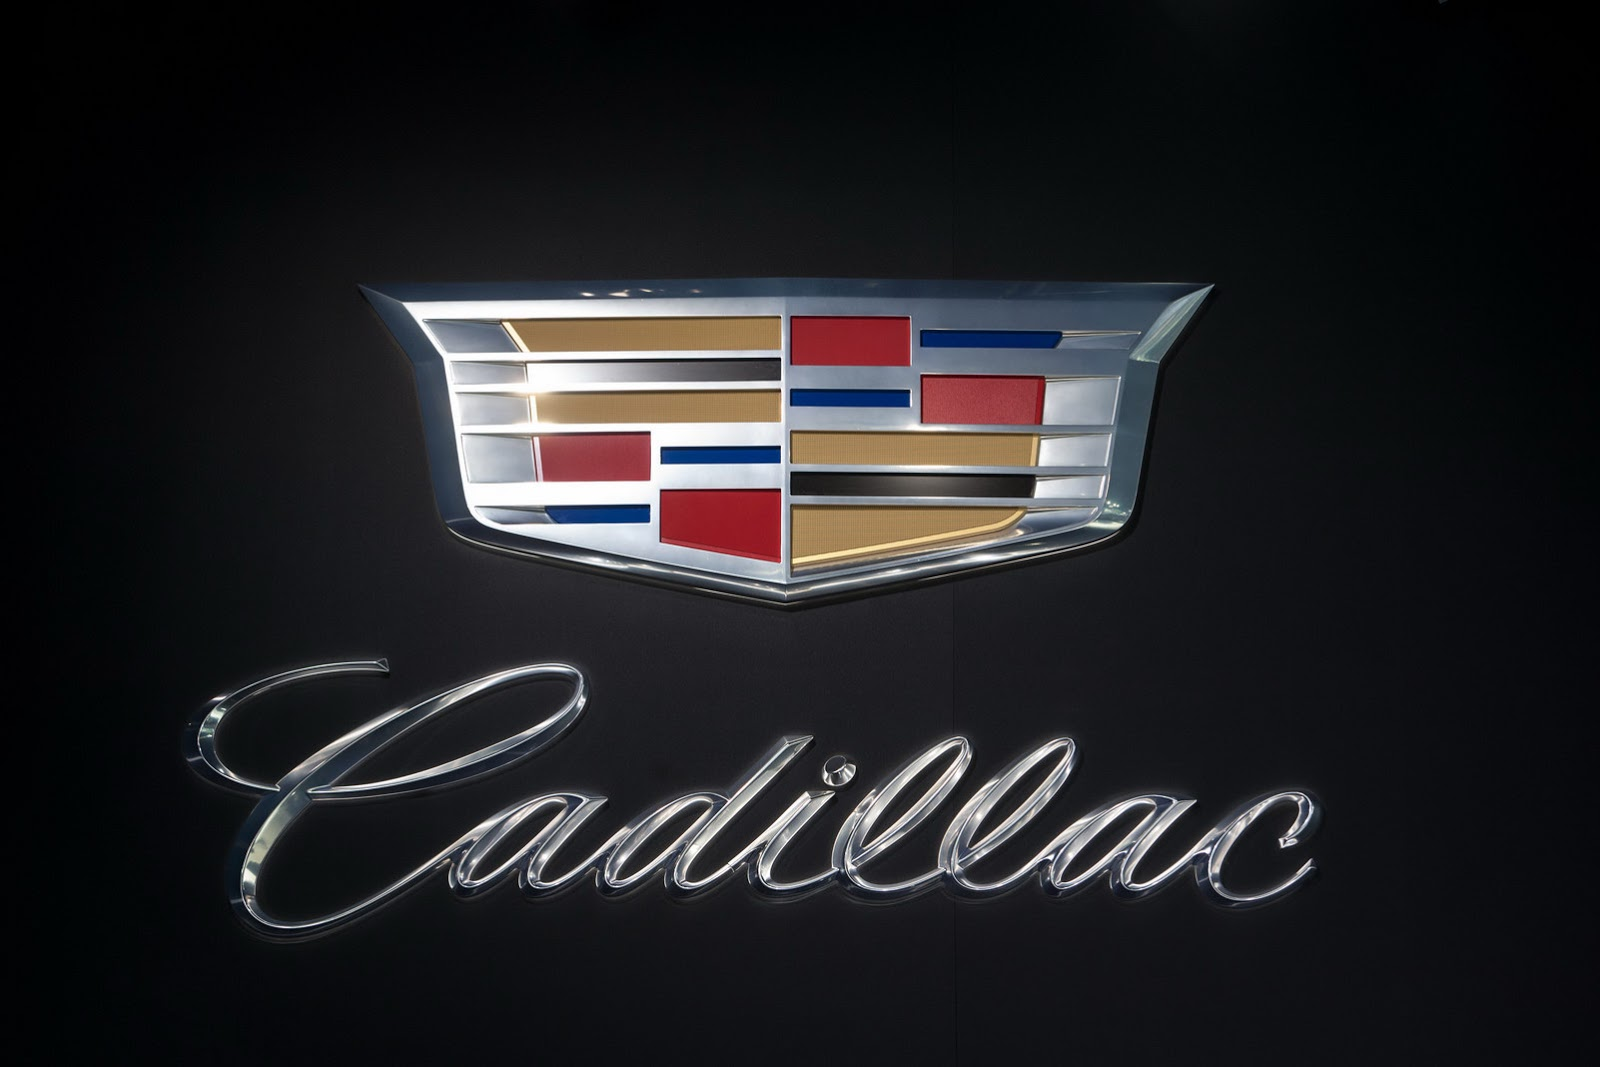 9 hd cadillac logo wallpapers hdwallsourcecom